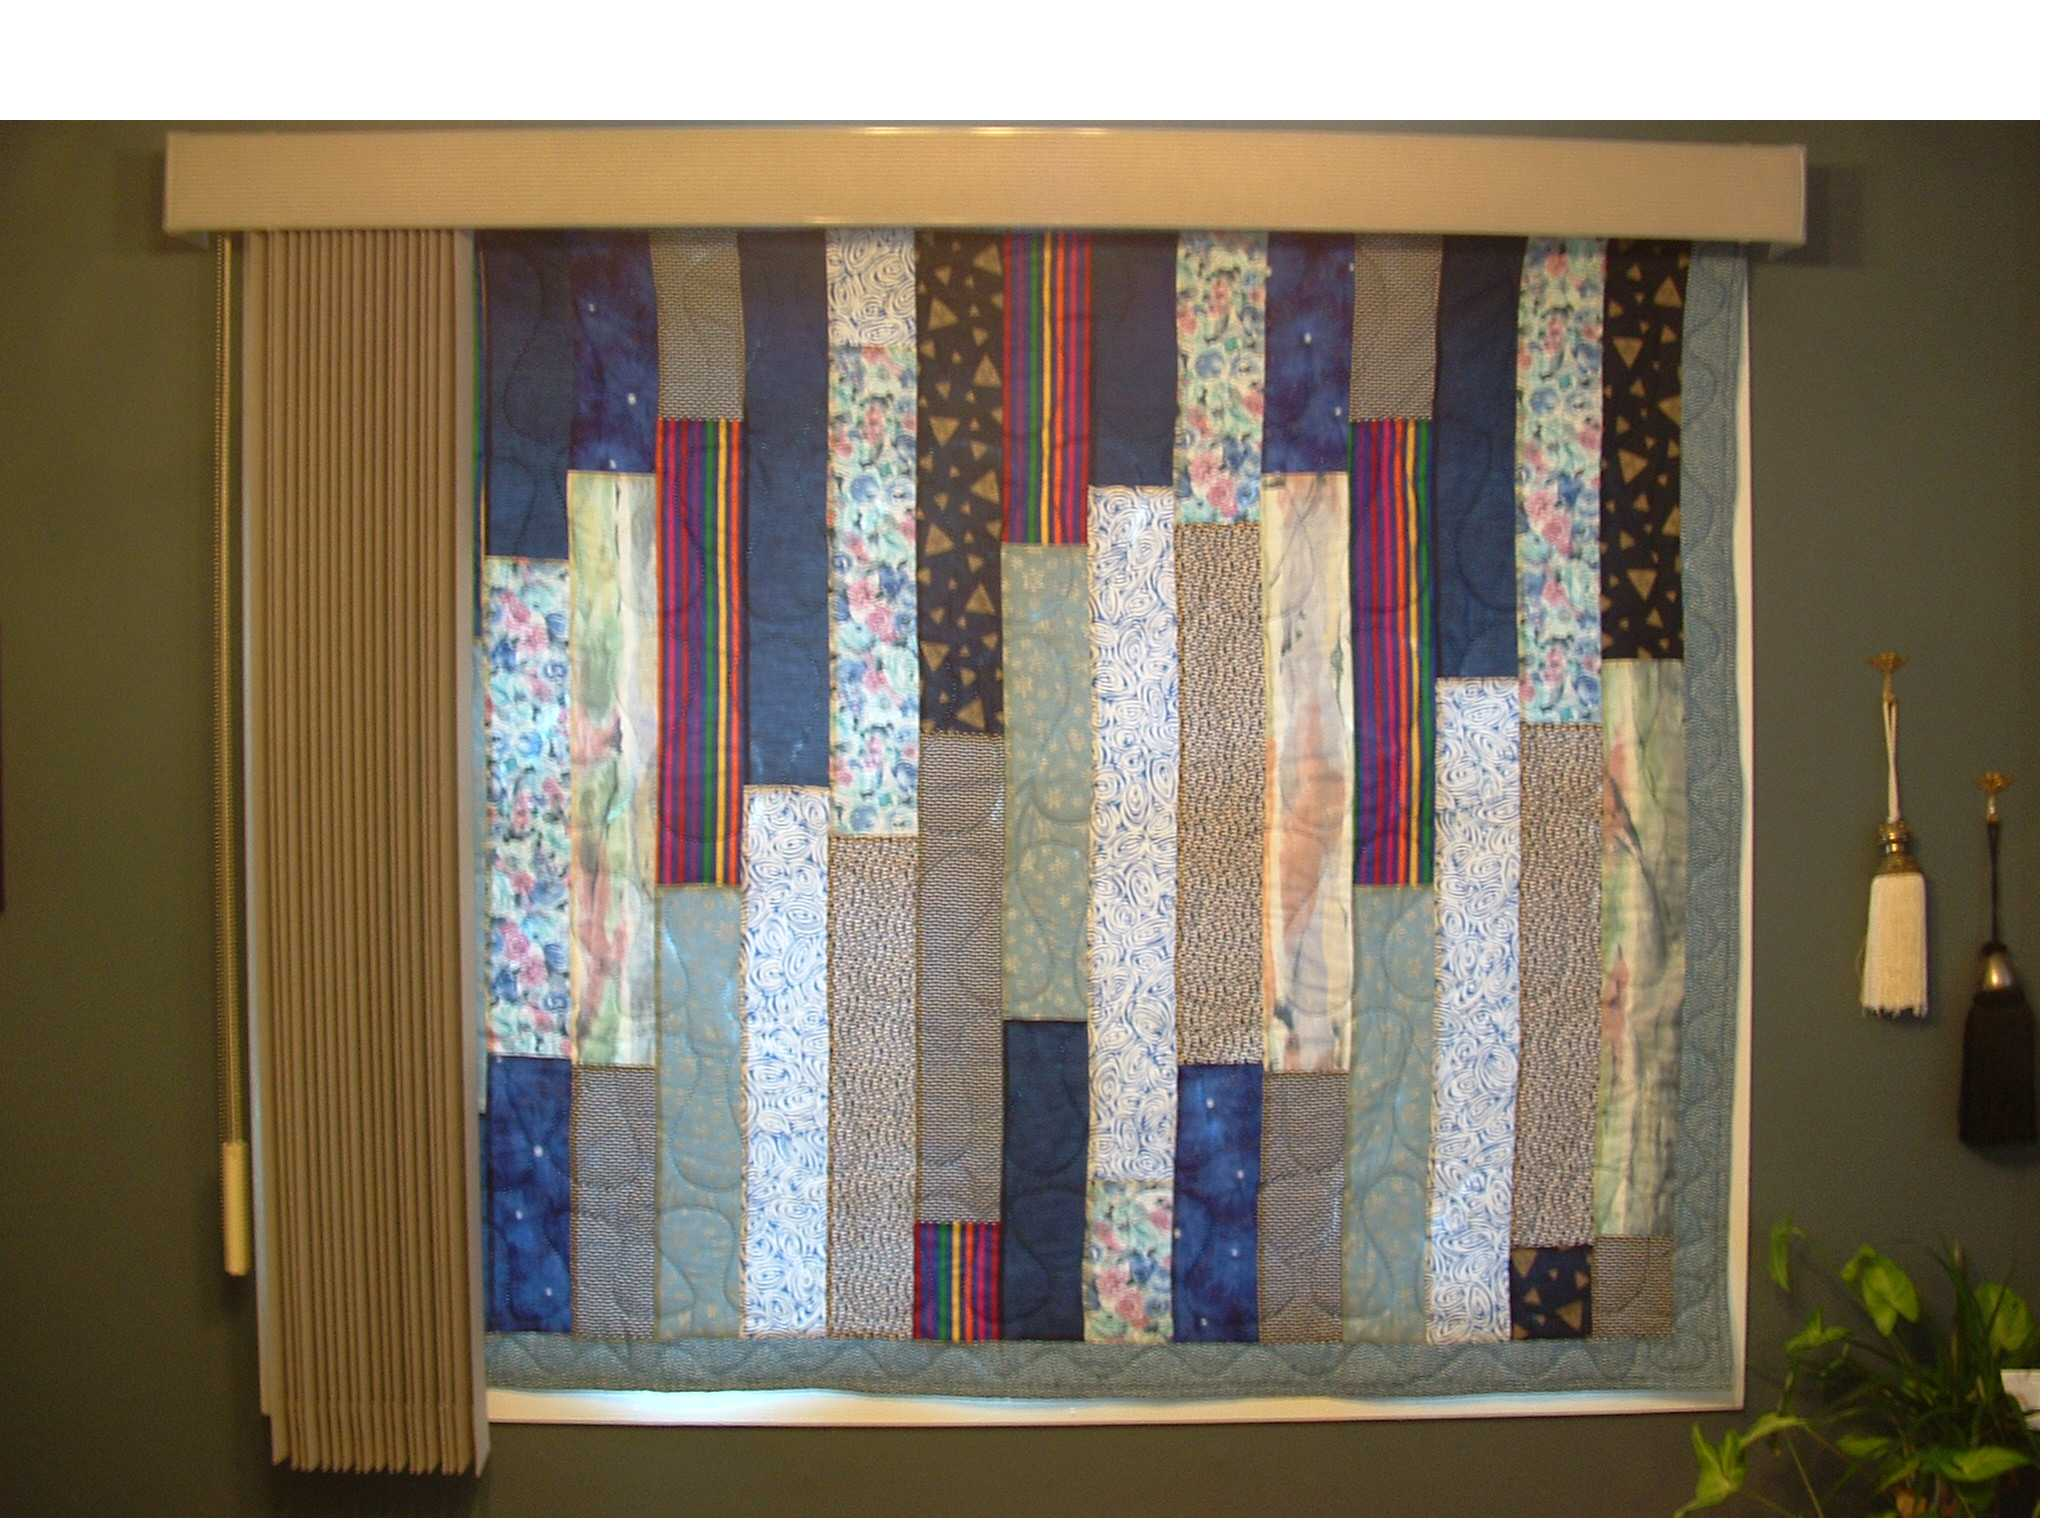 Quilt From Inside, With Vertical Blinds Open